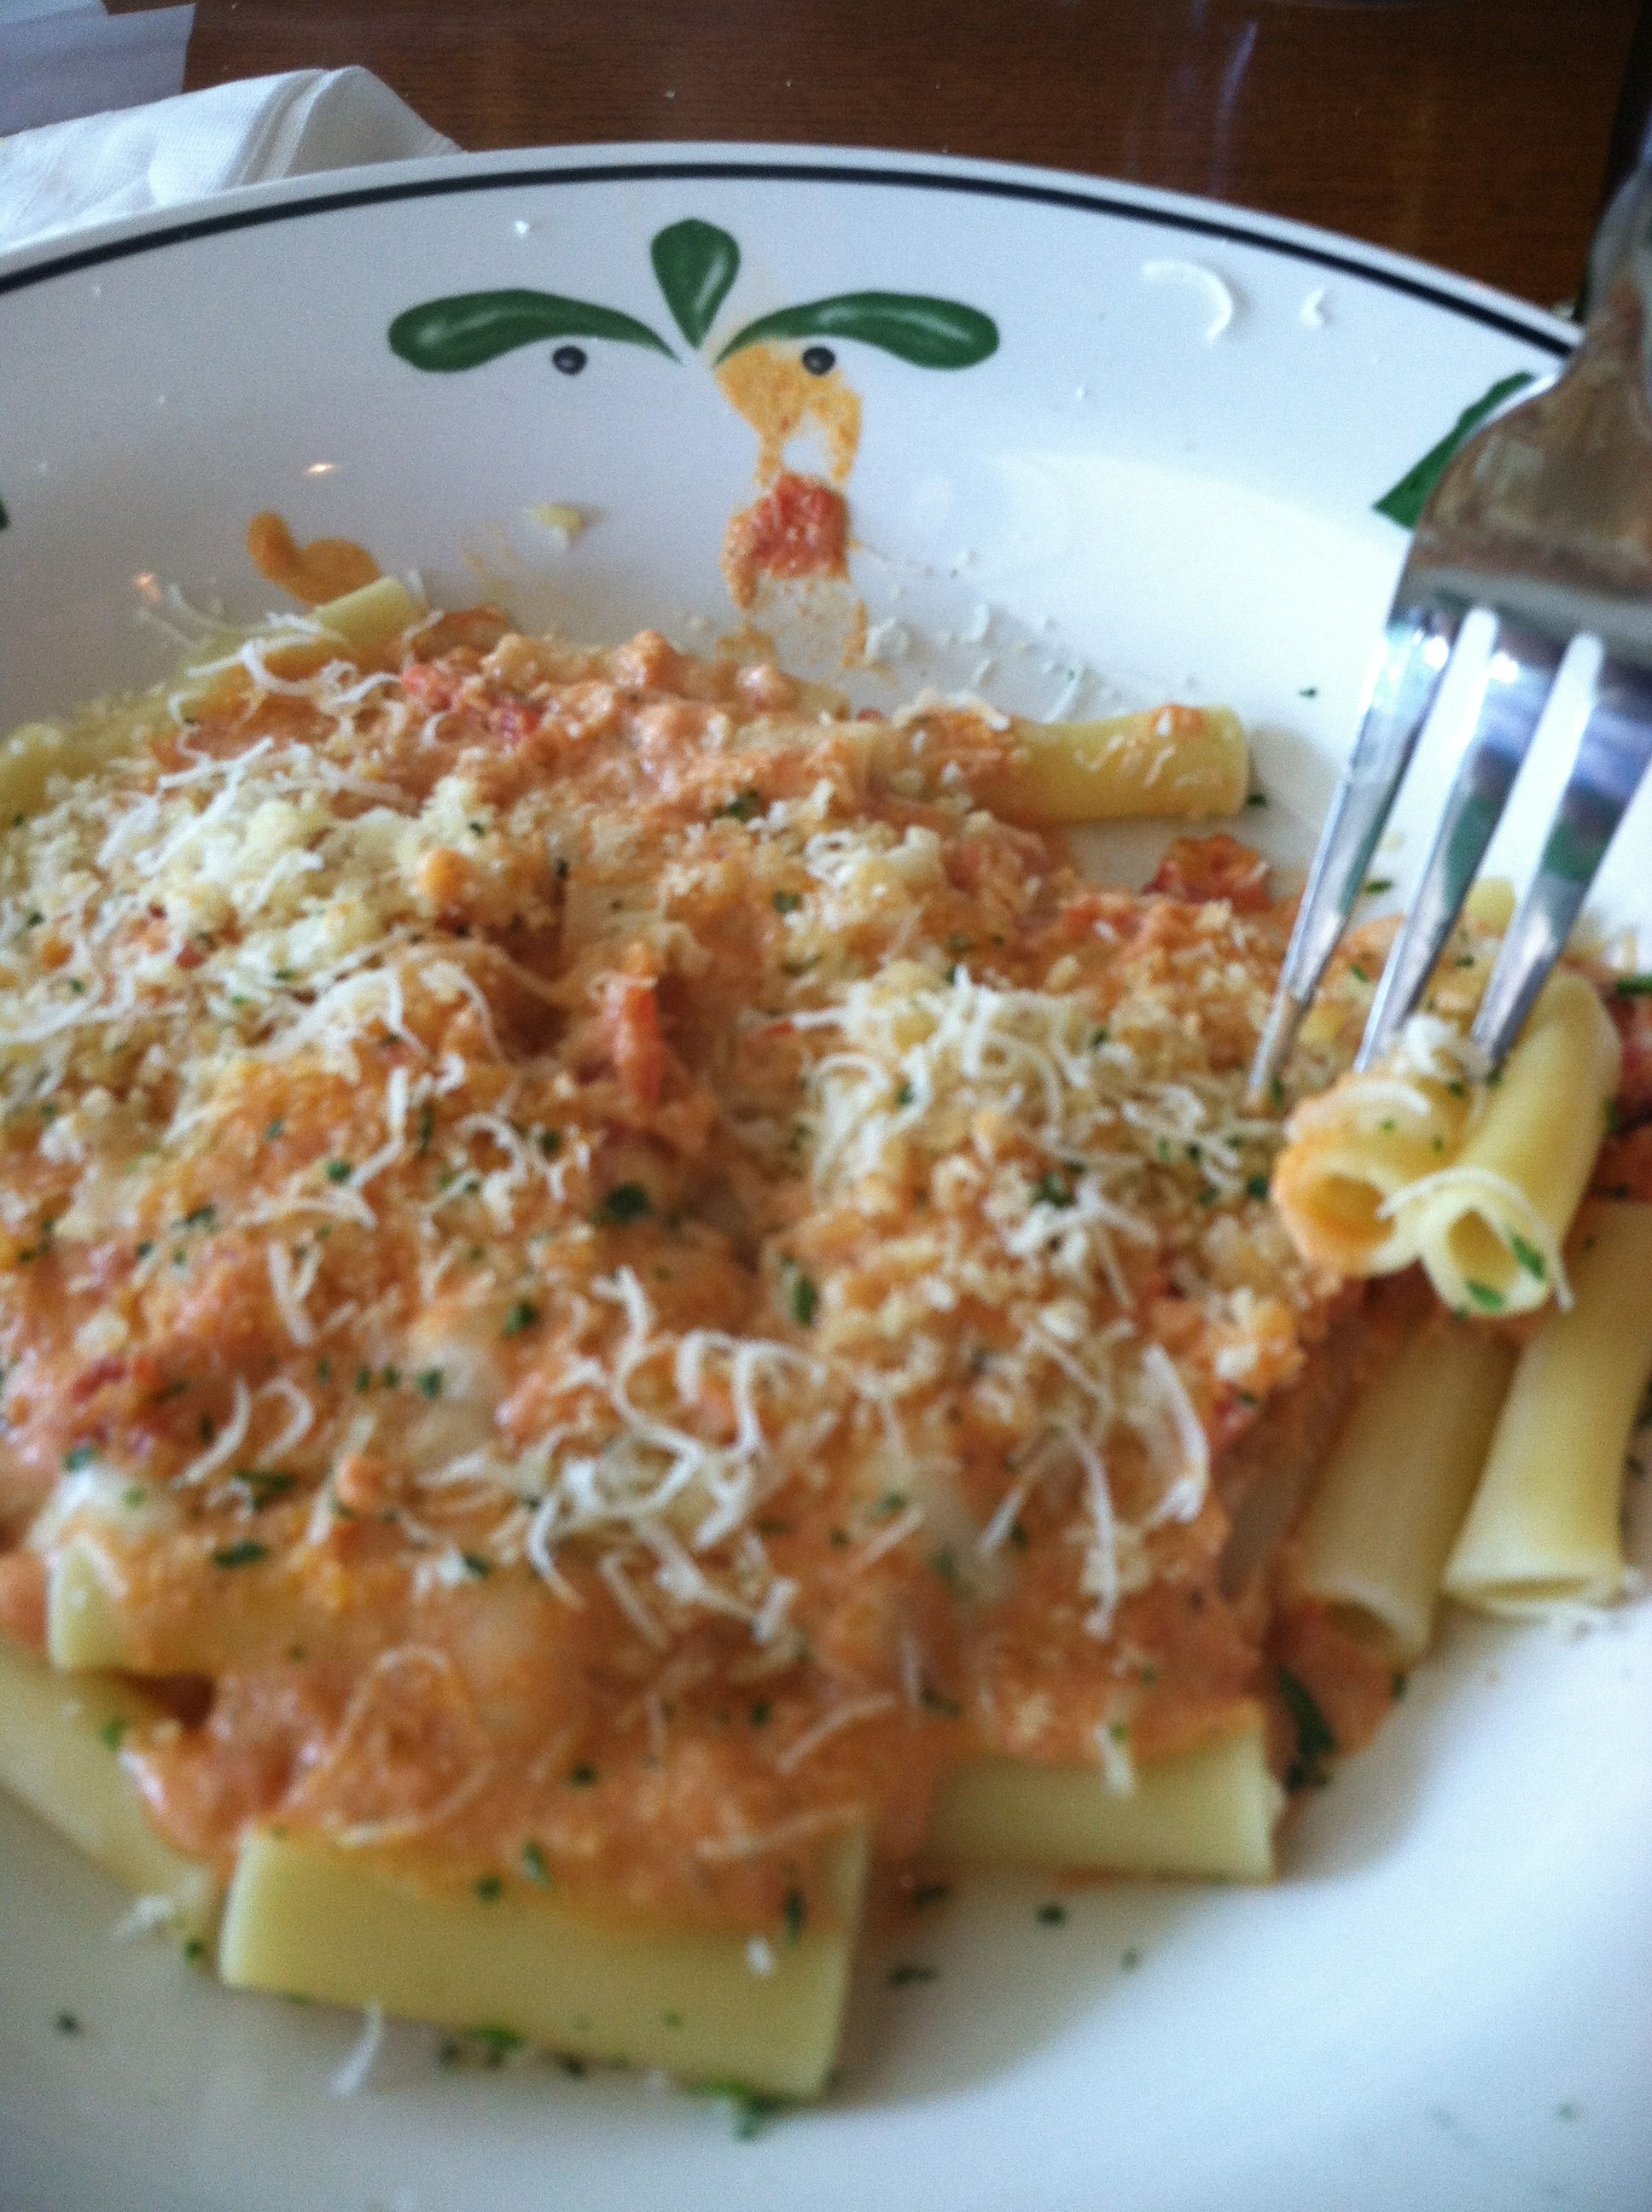 Olive Garden 5 Cheese Ziti Things I Love Pinterest Olive Gardens Cheese And Food